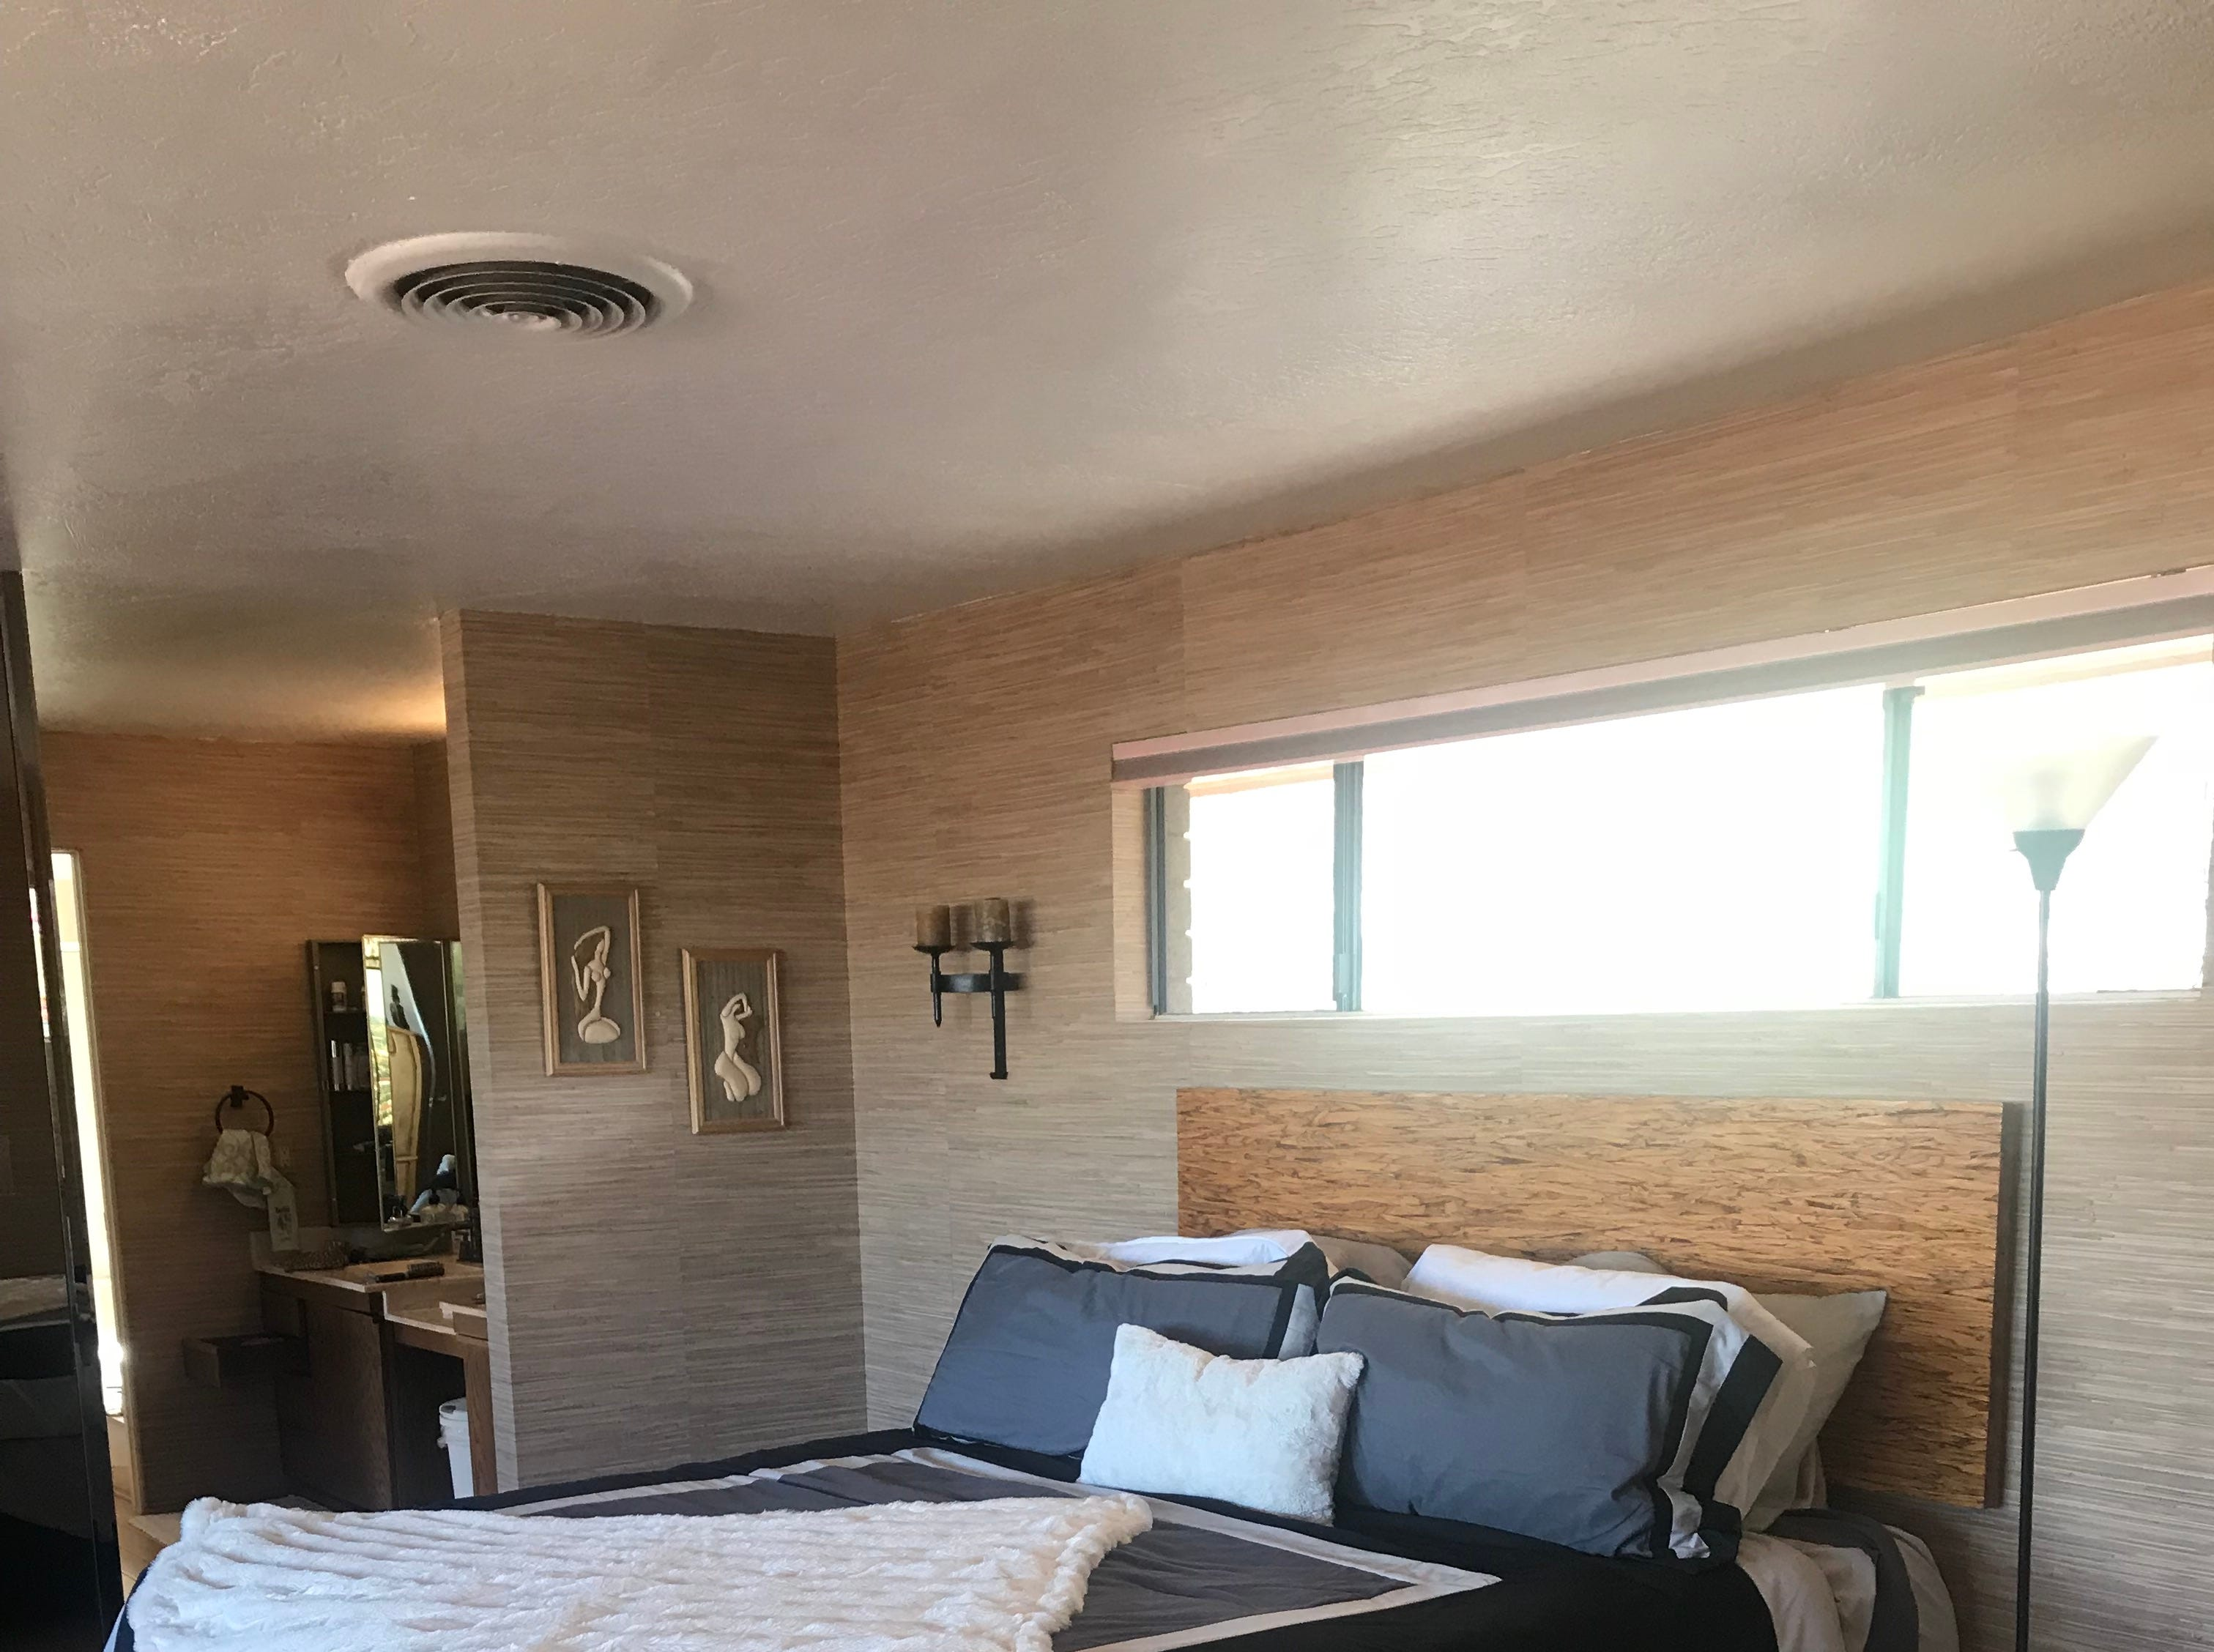 The master bedroom has views of the city below and the mountain behind it.